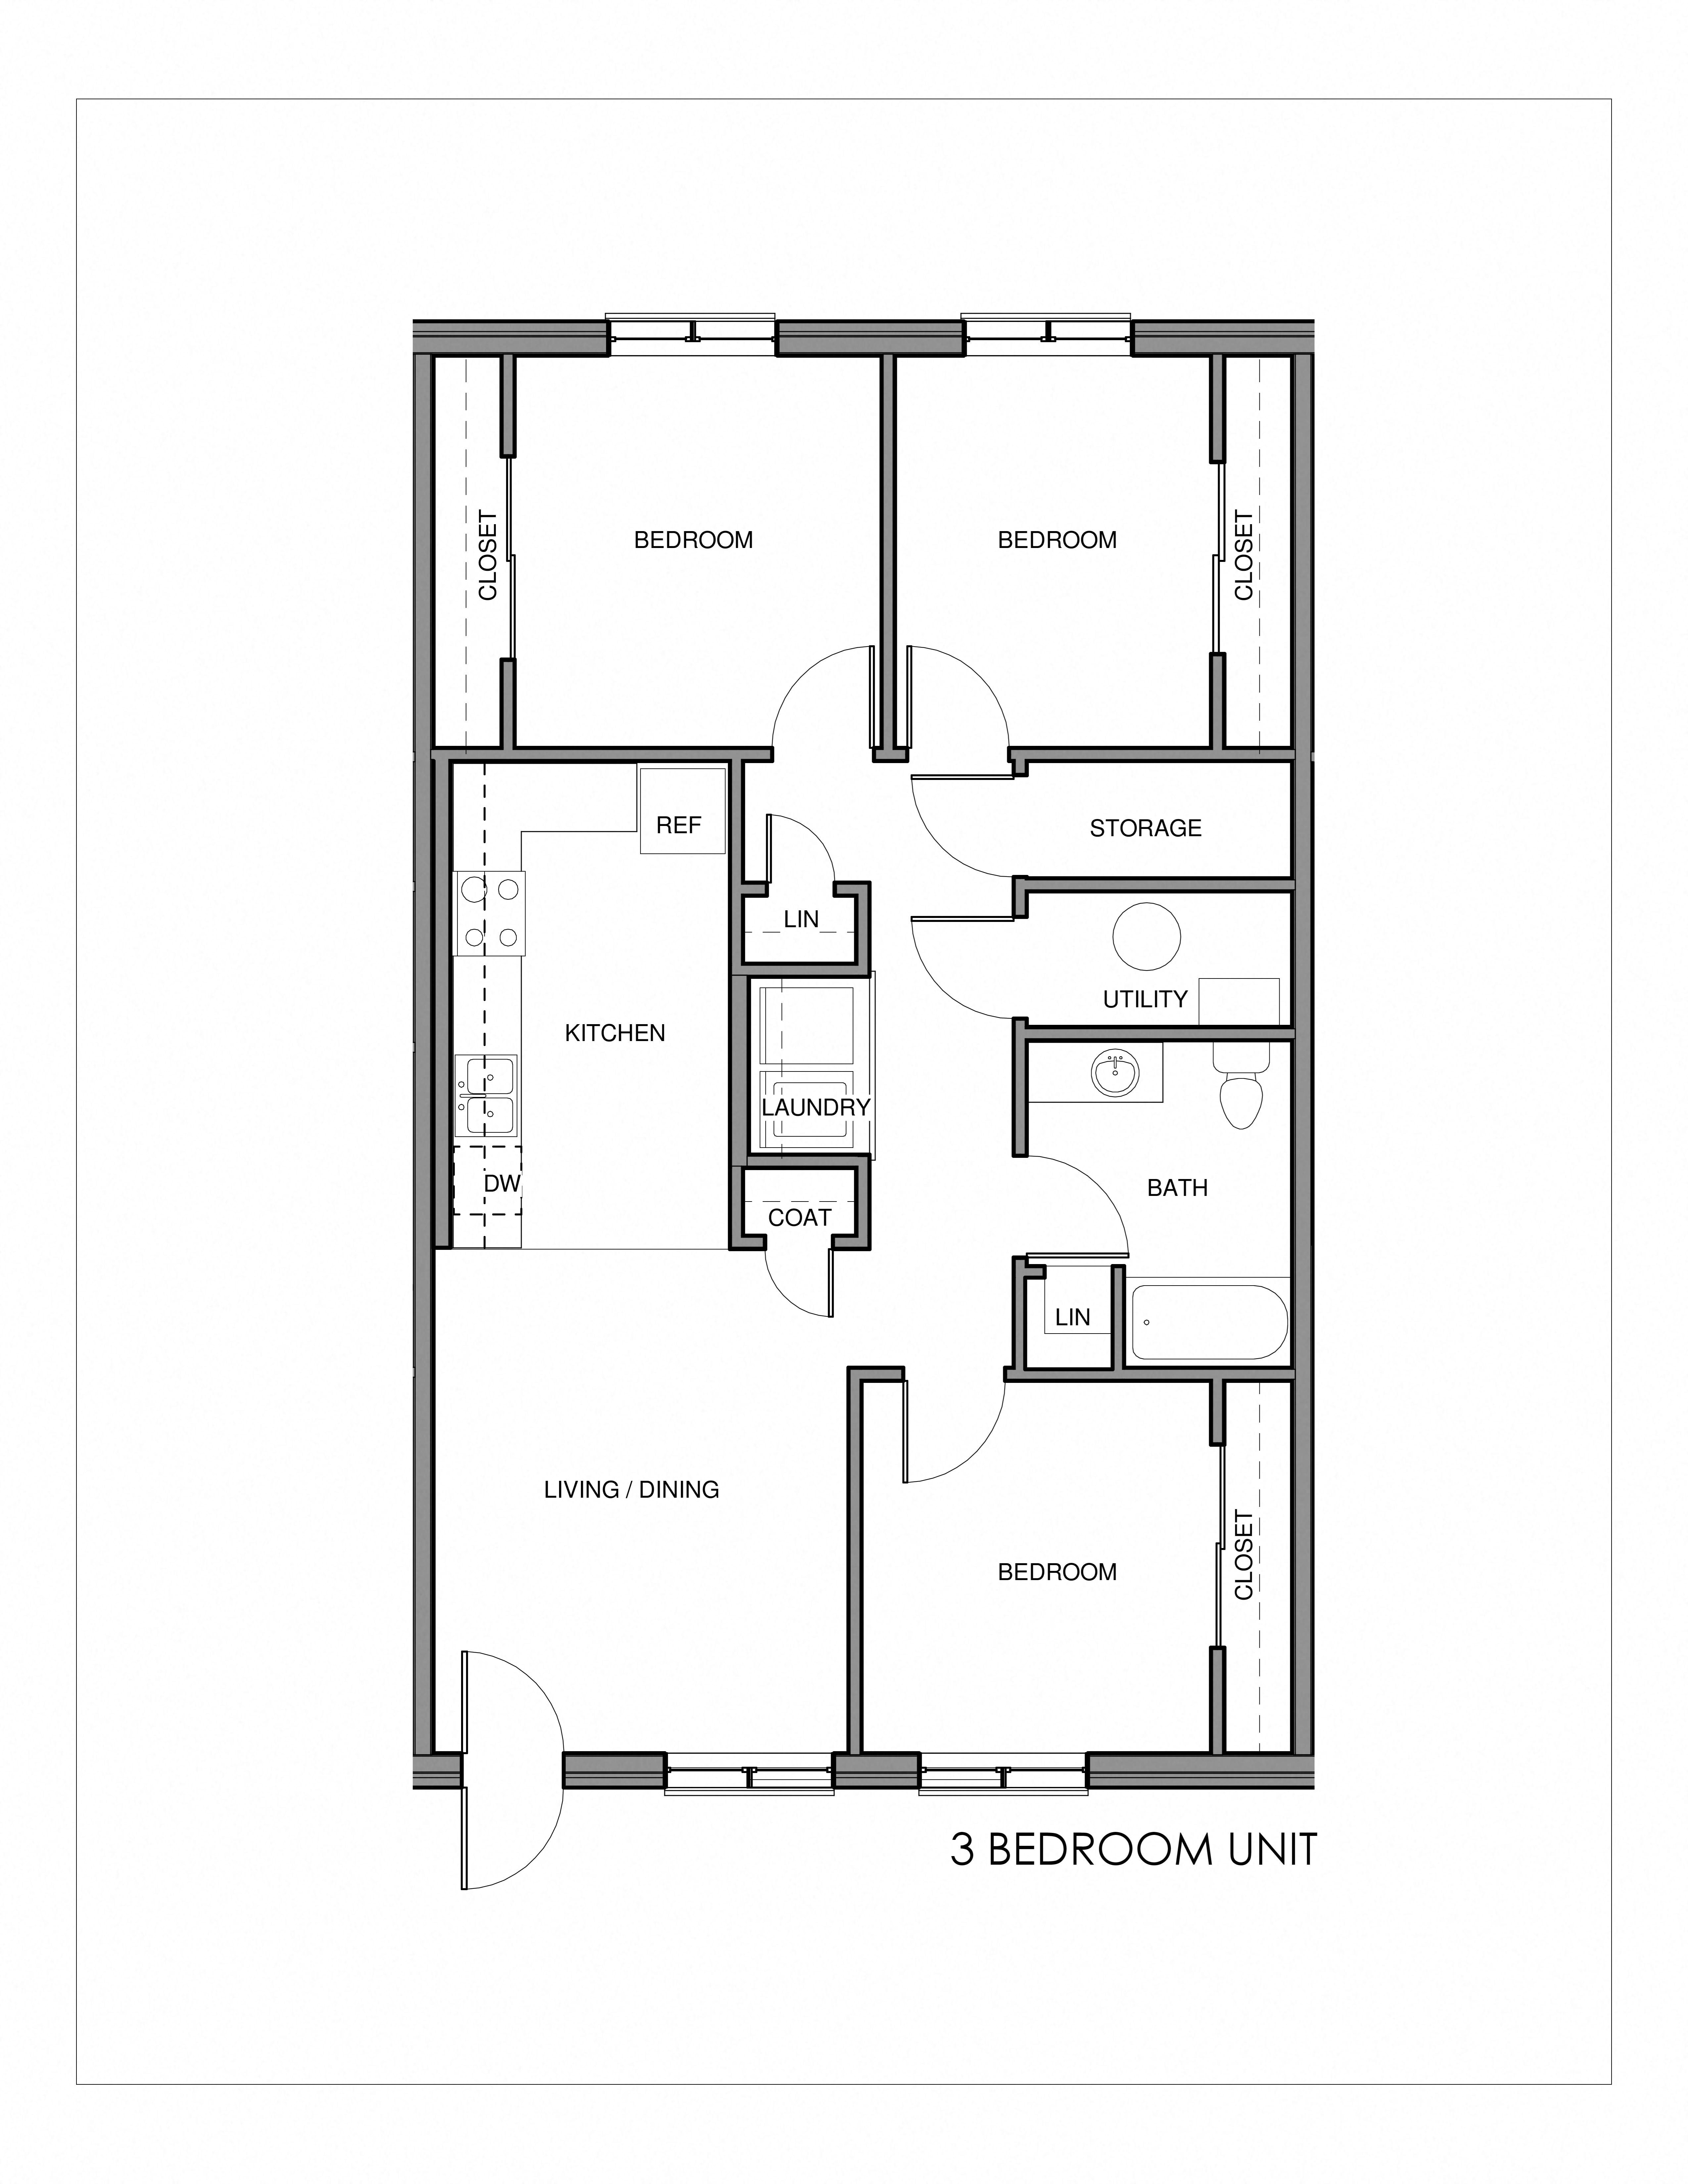 Floor Plans of Southern Pointe Apartments in Spencer, IA